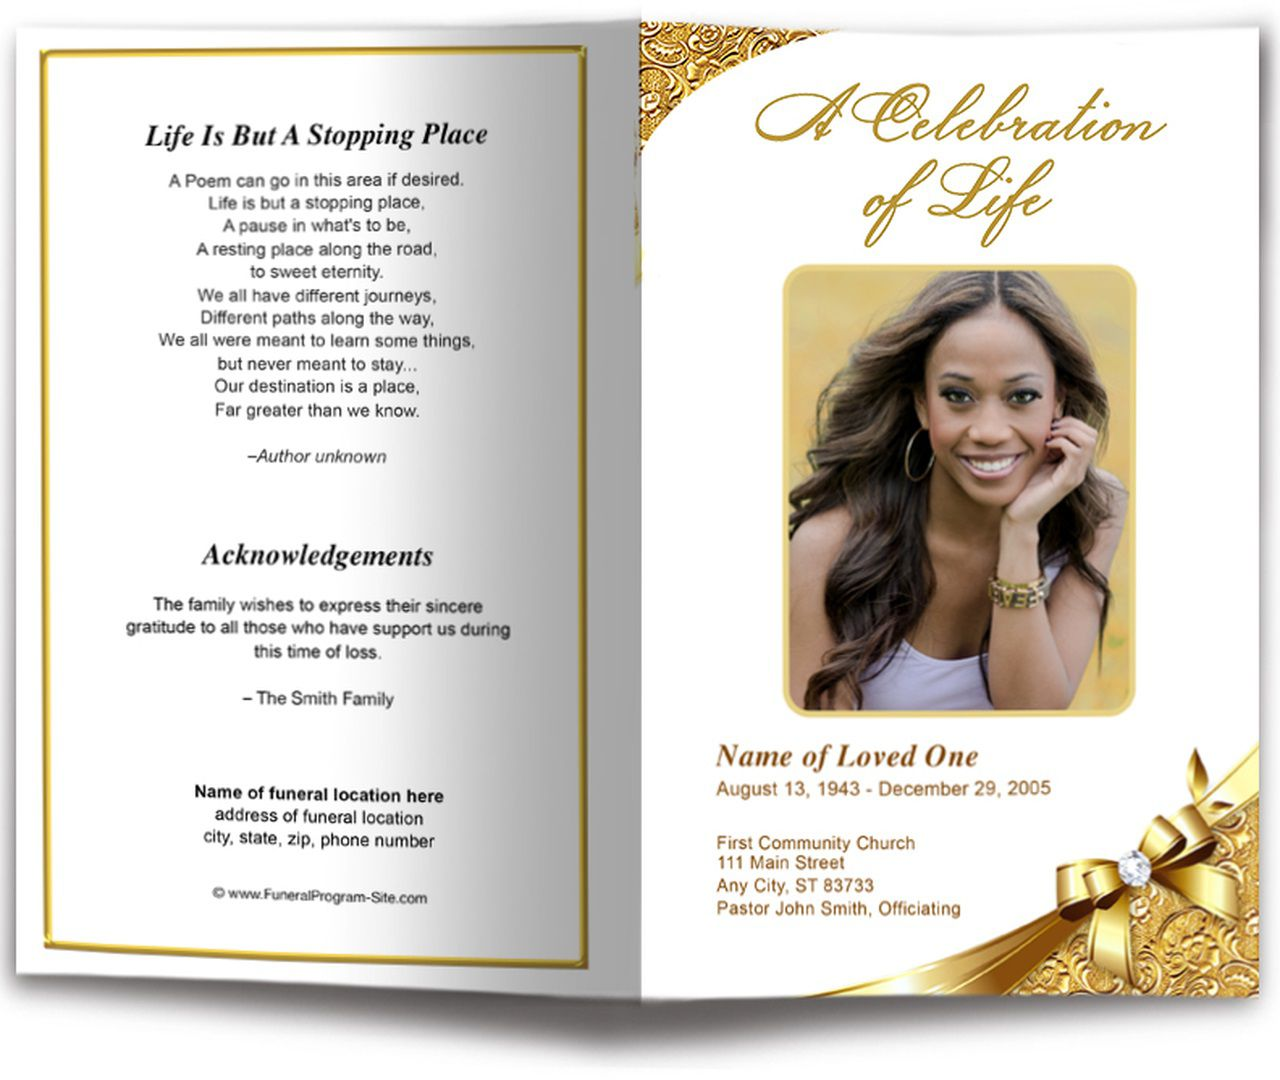 007 Astounding Funeral Program Template Free Example  Blank Microsoft Word Layout Editable Uk